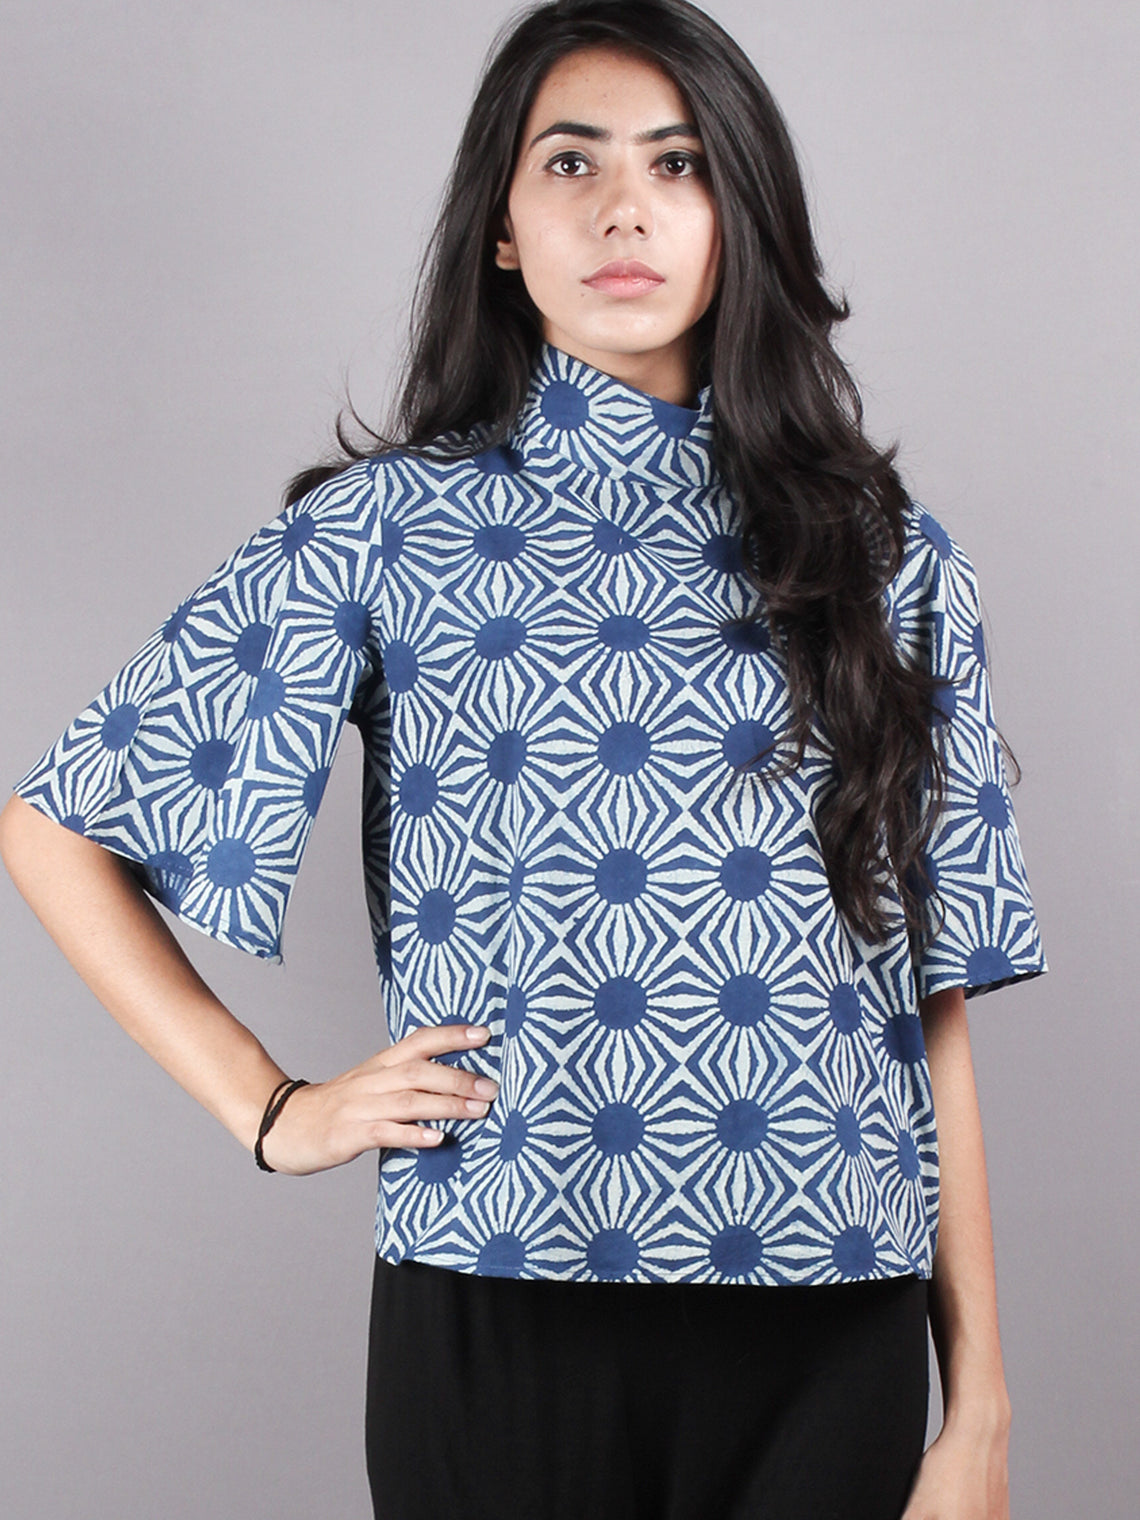 Indigo High Neck Hand Block Printed Cotton Flared Sleeves Back Buttons Top - T1080007